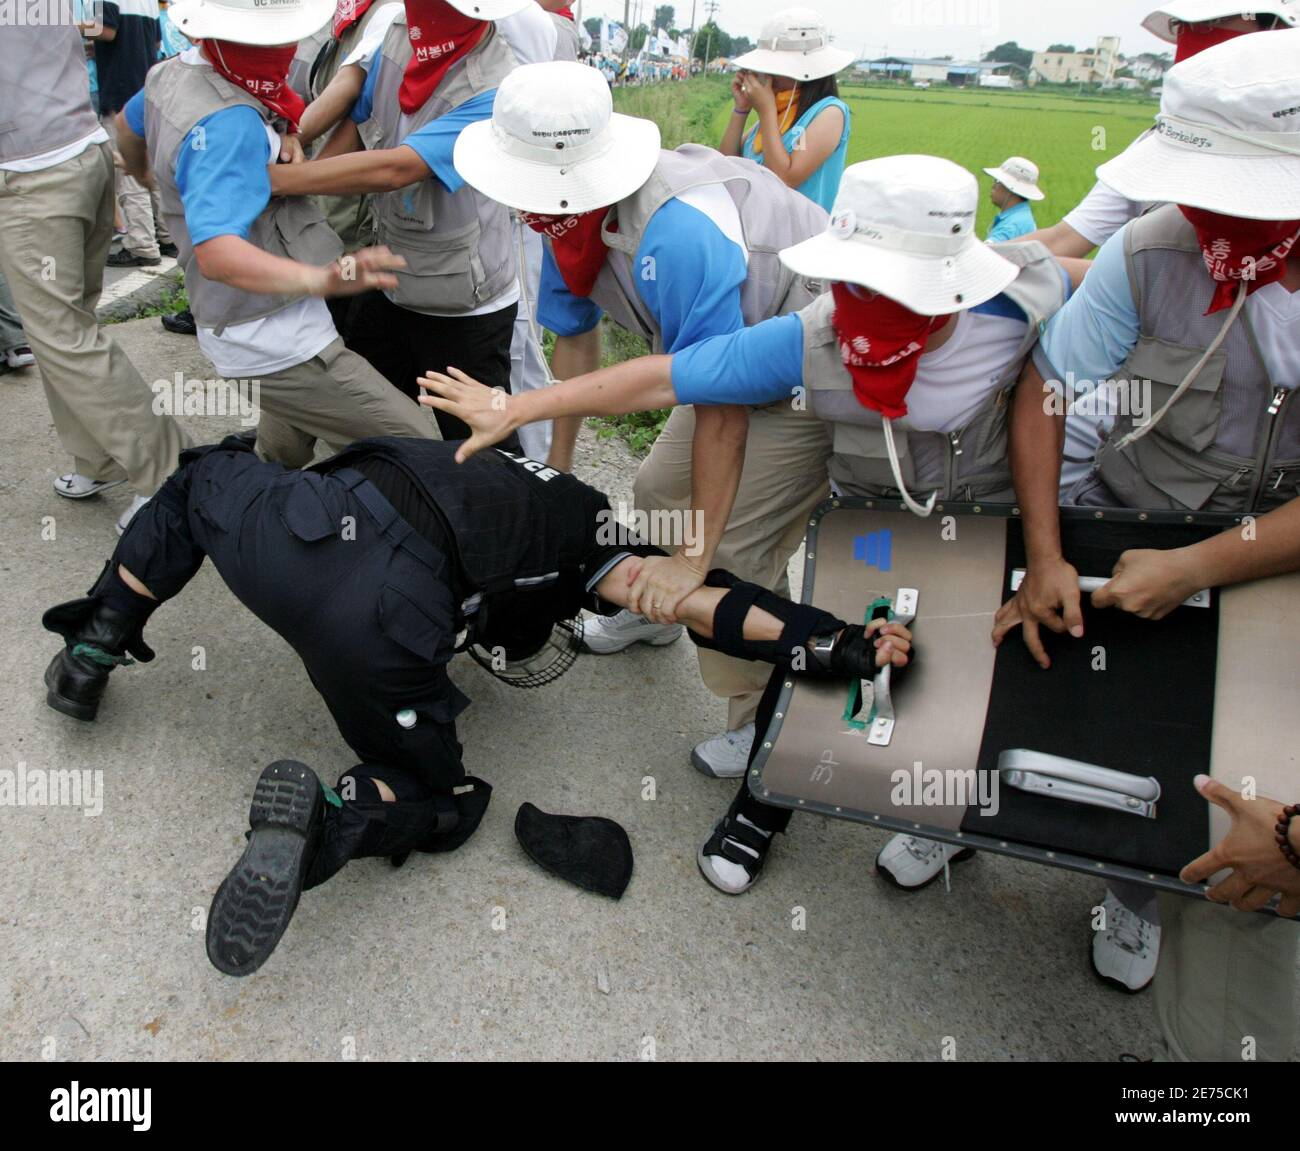 Protesters detain a riot policeman as police use shields and clubs to stop protesters trying to enter U.S. army's Camp Humphreys in Pyongtaek, South Korea.  Protesters detain a riot policeman as police use shields and clubs to stop the protesters trying to enter the U.S. army's Camp Humphreys in Pyongtaek, about 80 km (50 miles) south of Seoul, August 8, 2005. About 500 South Korean protesters from labour unions and college students' groups rallied near the U.S. army base on Monday as they demanded U.S. forces leave the country, which they insist block the reunification of the two Koreas. REUT Stock Photo